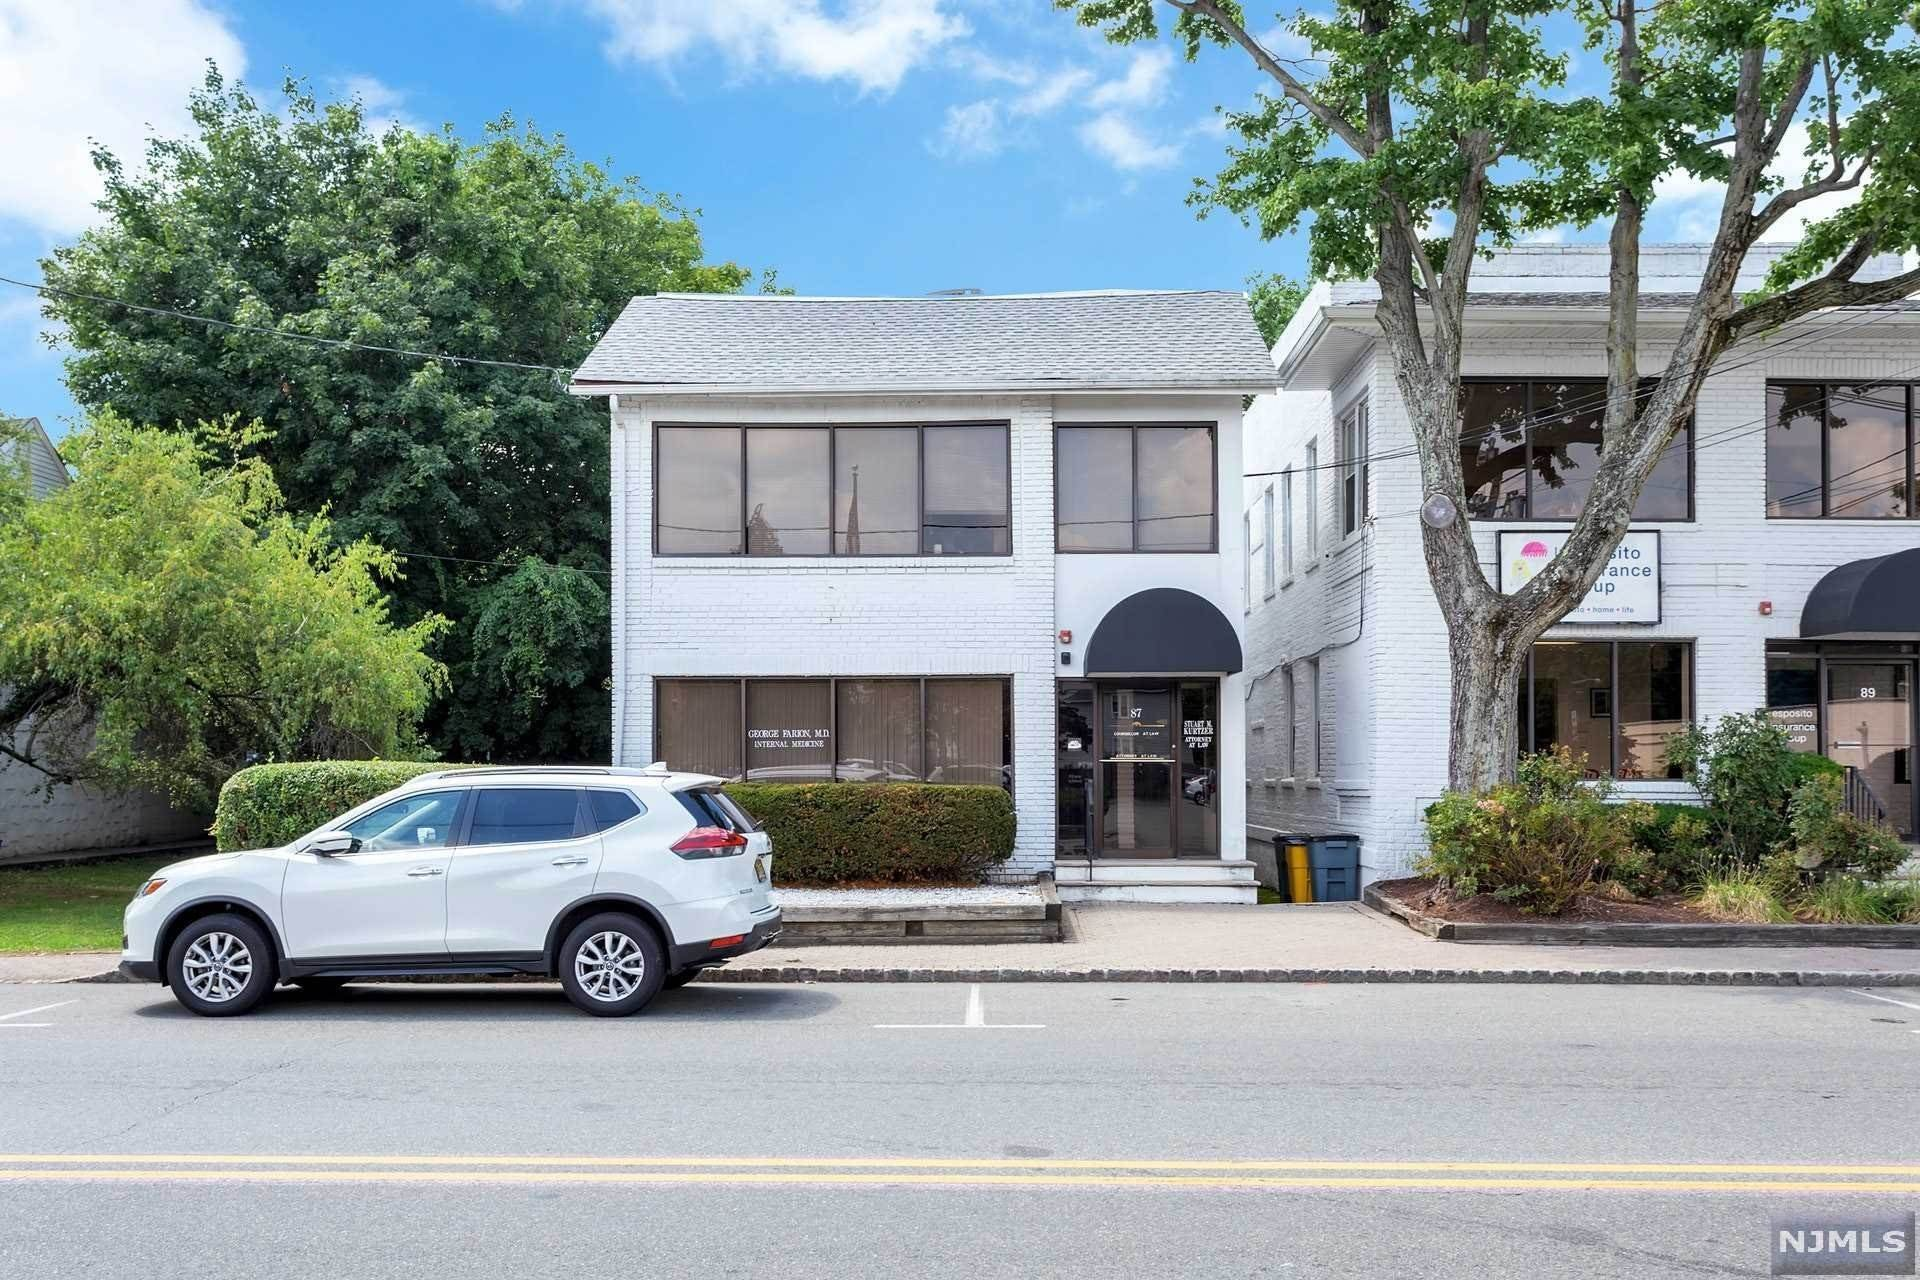 Commercial / Office for Sale at 87 Franklin Avenue Nutley, New Jersey, 07110 United States